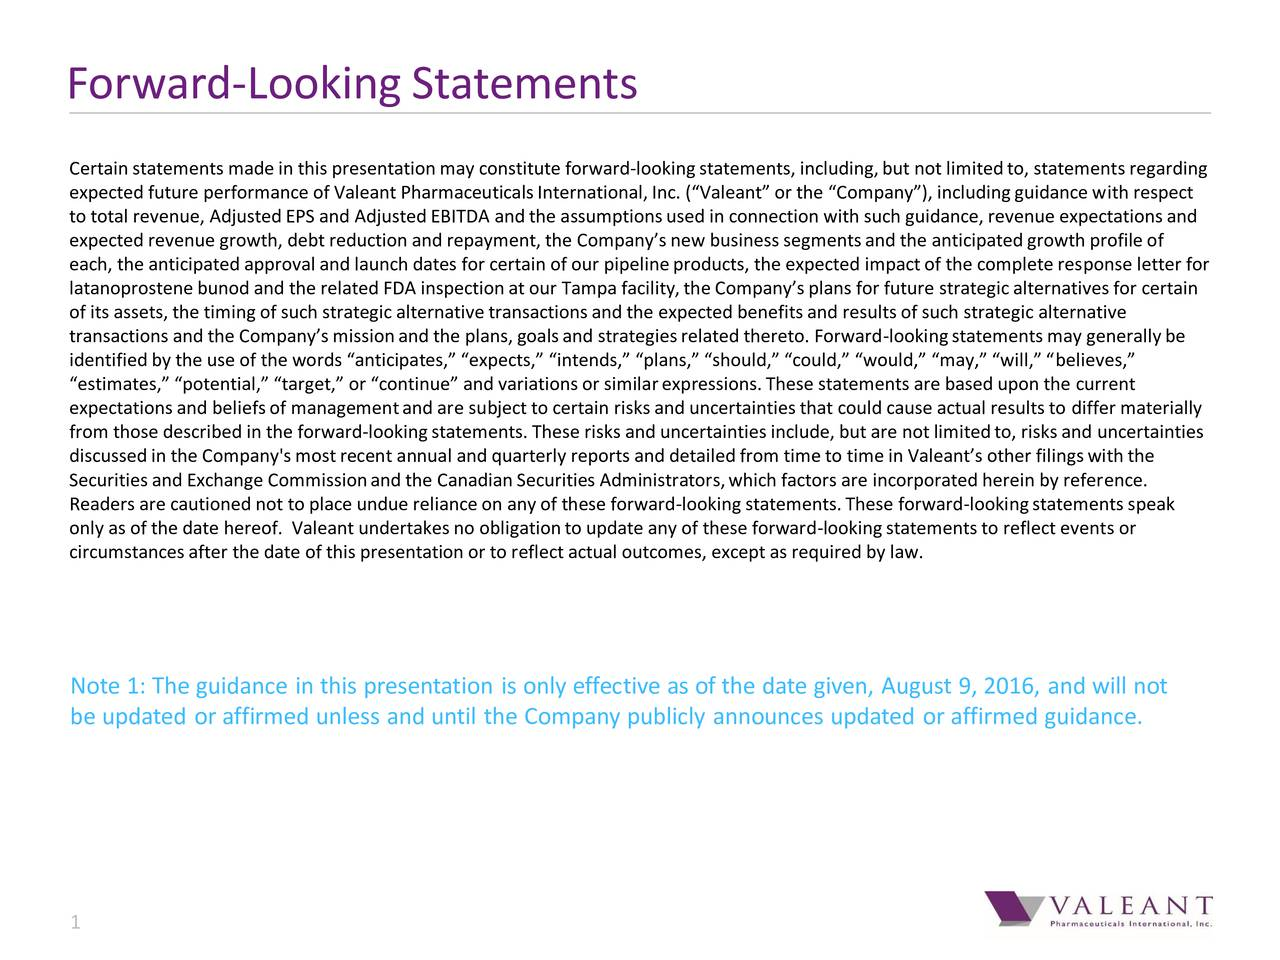 Certainstatements madein this presentationmay constitute forward-lookingstatements, including,but not limitedto, statementsregarding expected future performance of Valeant PharmaceuticalsInternational,Inc. (Valeant or the Company), includingguidancewith respect to total revenue, AdjustedEPS and AdjustedEBITDA and the assumptionsused in connection with such guidance, revenue expectationsand expected revenue growth, debt reduction and repayment, the Companysnew businesssegmentsand the anticipatedgrowth profileof each, the anticipated approval and launch dates for certain of our pipelineproducts, the expected impactof the completeresponse letter for latanoprostene bunod and the related FDA inspectionat our Tampa facility,the Companysplans for future strategicalternativesfor certain of its assets, the timing of such strategic alternativetransactionsand the expected benefitsand resultsof such strategic alternative transactions and the Companysmissionand the plans, goalsand strategiesrelated thereto. Forward-lookingstatementsmay generallybe identifiedby the use of the words anticipates, expects, intends, plans, should, could, would, may, will, believes, estimates, potential, target, or continue and variationsor similarexpressions.These statements are based upon the current expectationsand beliefsof managementand are subject to certain risksand uncertaintiesthat could cause actual resultsto differ materially from those described in the forward-lookingstatements. These risks and uncertaintiesinclude, but are not limitedto, risksand uncertainties discussedin the Company'smostrecent annual and quarterly reports and detailedfrom timeto timein Valeants other filingswith the Securitiesand Exchange Commissionand the CanadianSecuritiesAdministrators,which factors are incorporated herein by reference. Readers are cautioned not to place undue relianceon any of these forward-looking statements.These forward-lookingstatementsspeak only as of the date hereof. Valeant undertakesno oblig